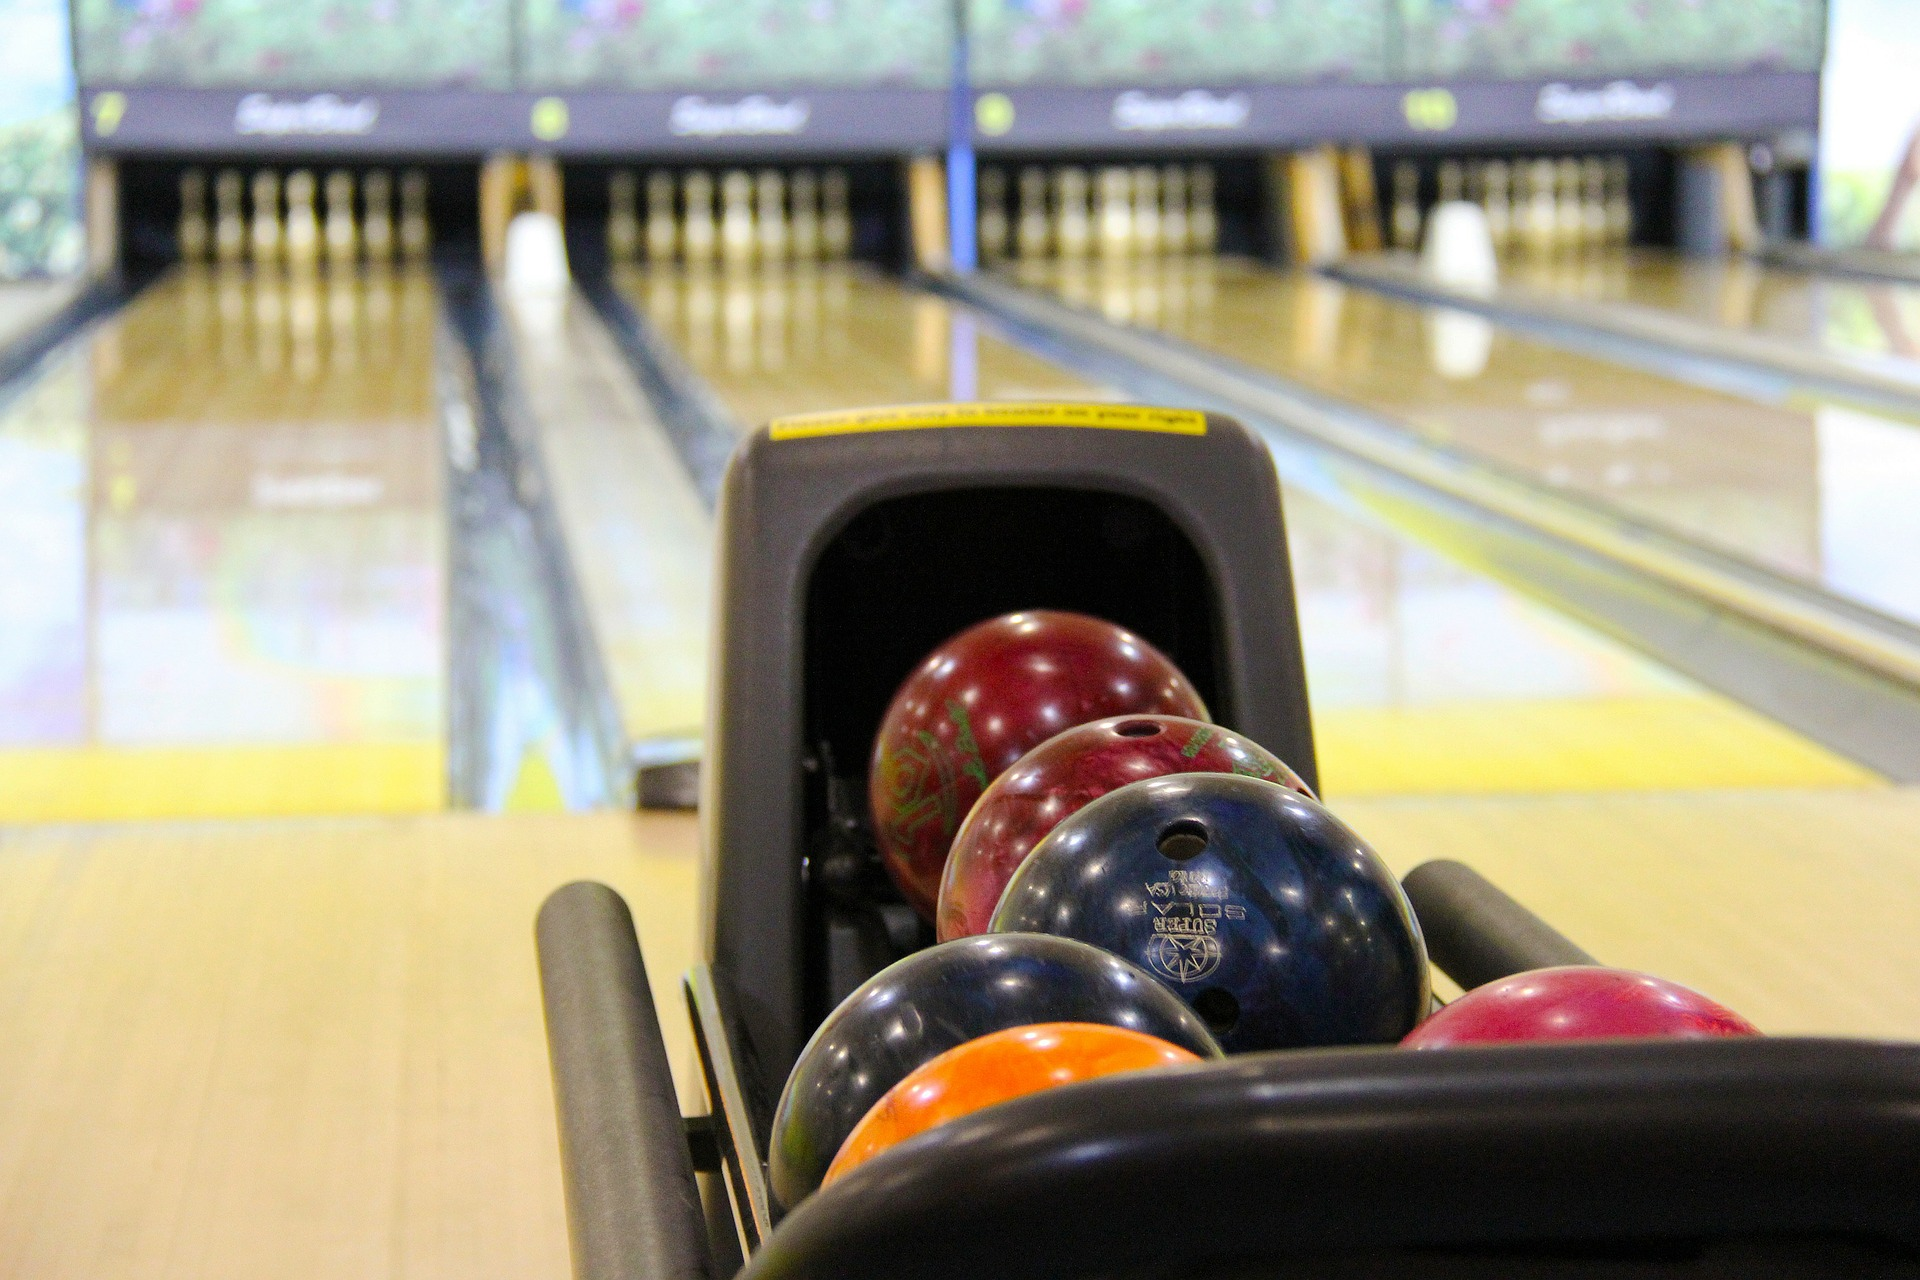 Picture of bowling alley lane